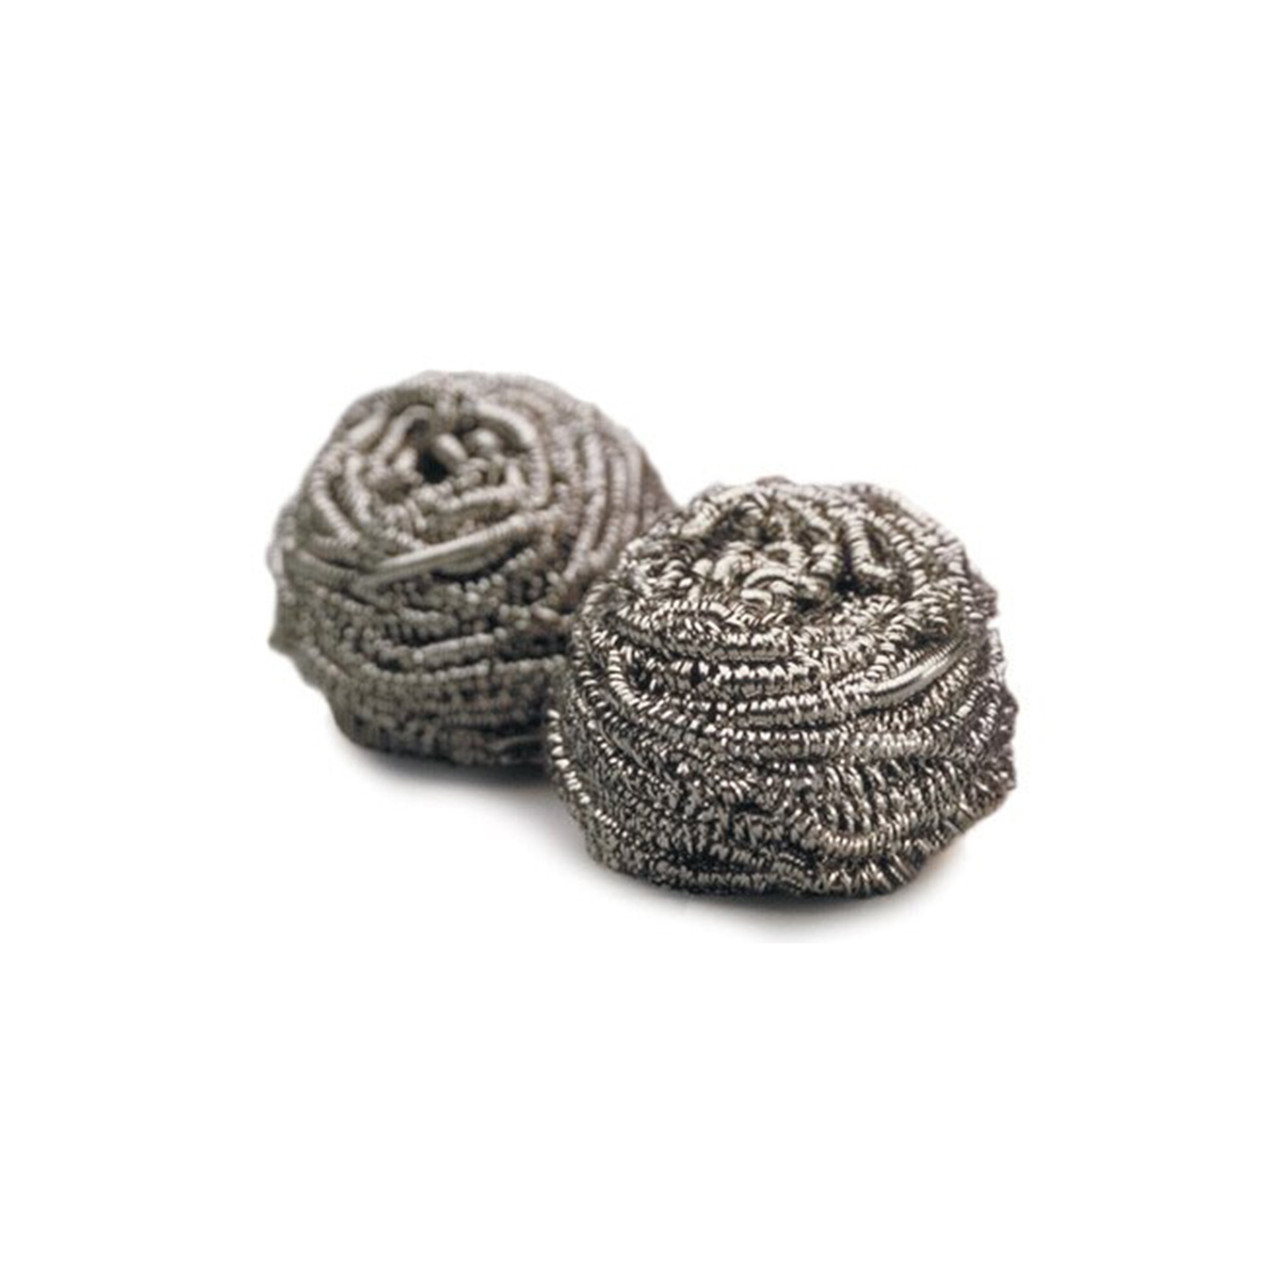 Pack of 4 RSVP Endurance Pack of 2 Stainless Steel Scrubbies